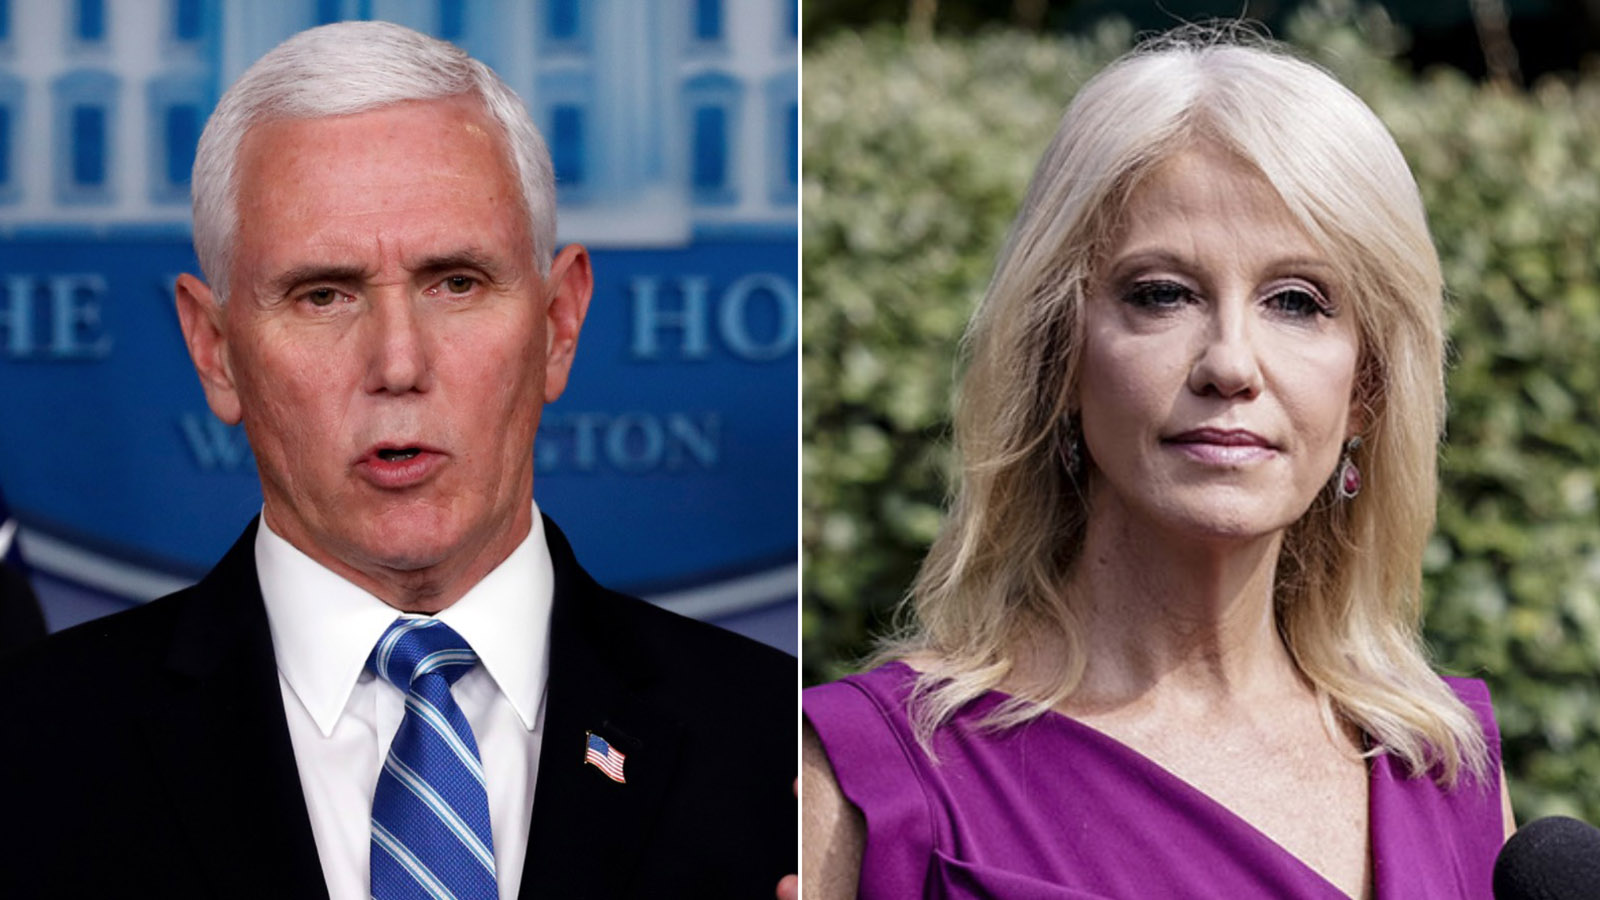 Vice President Mike Pence and Kellyanne Conway.